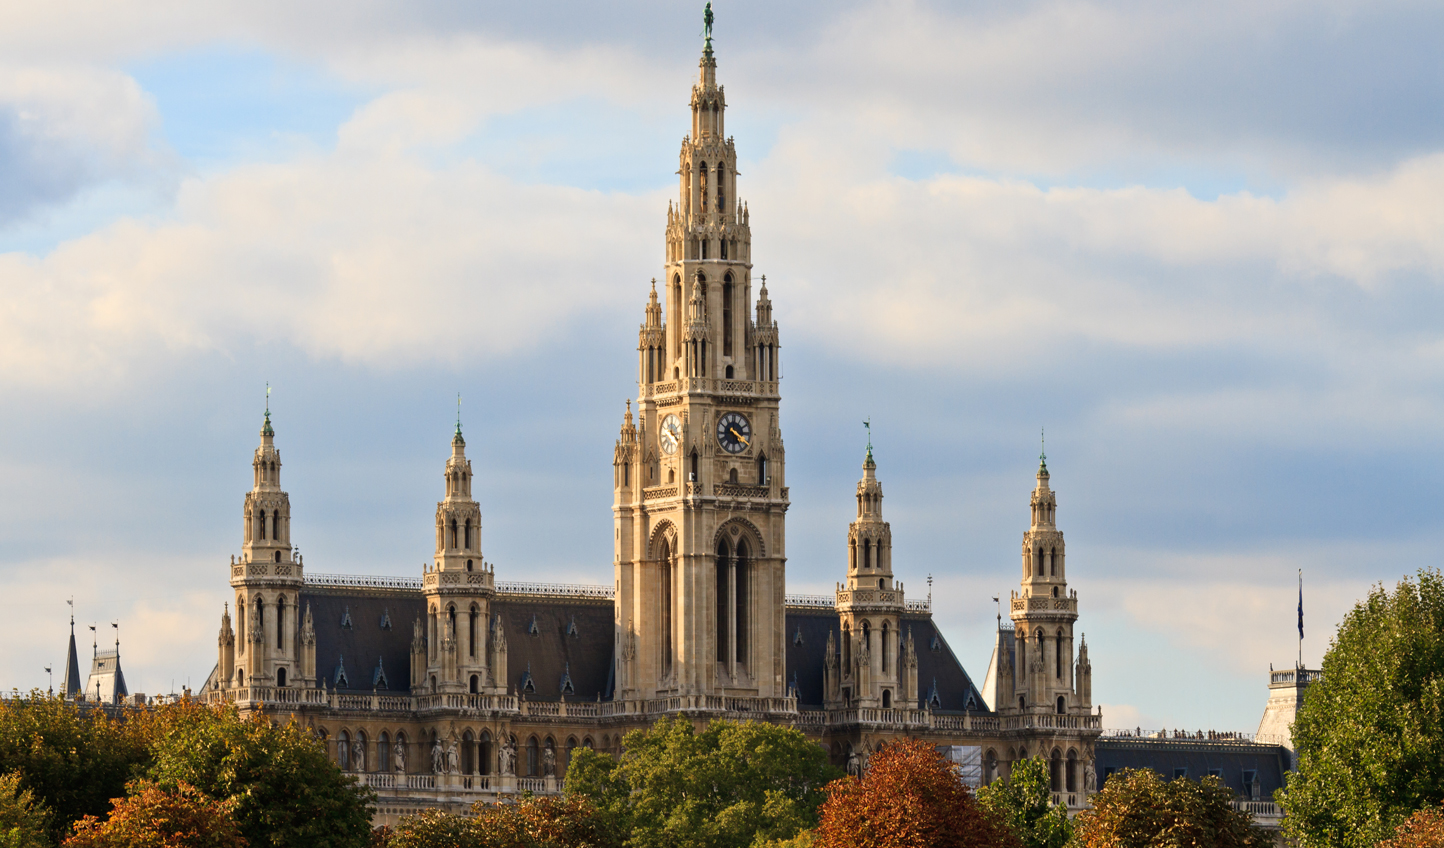 Admire Vienna's stately buildings, such as the Rathaus.